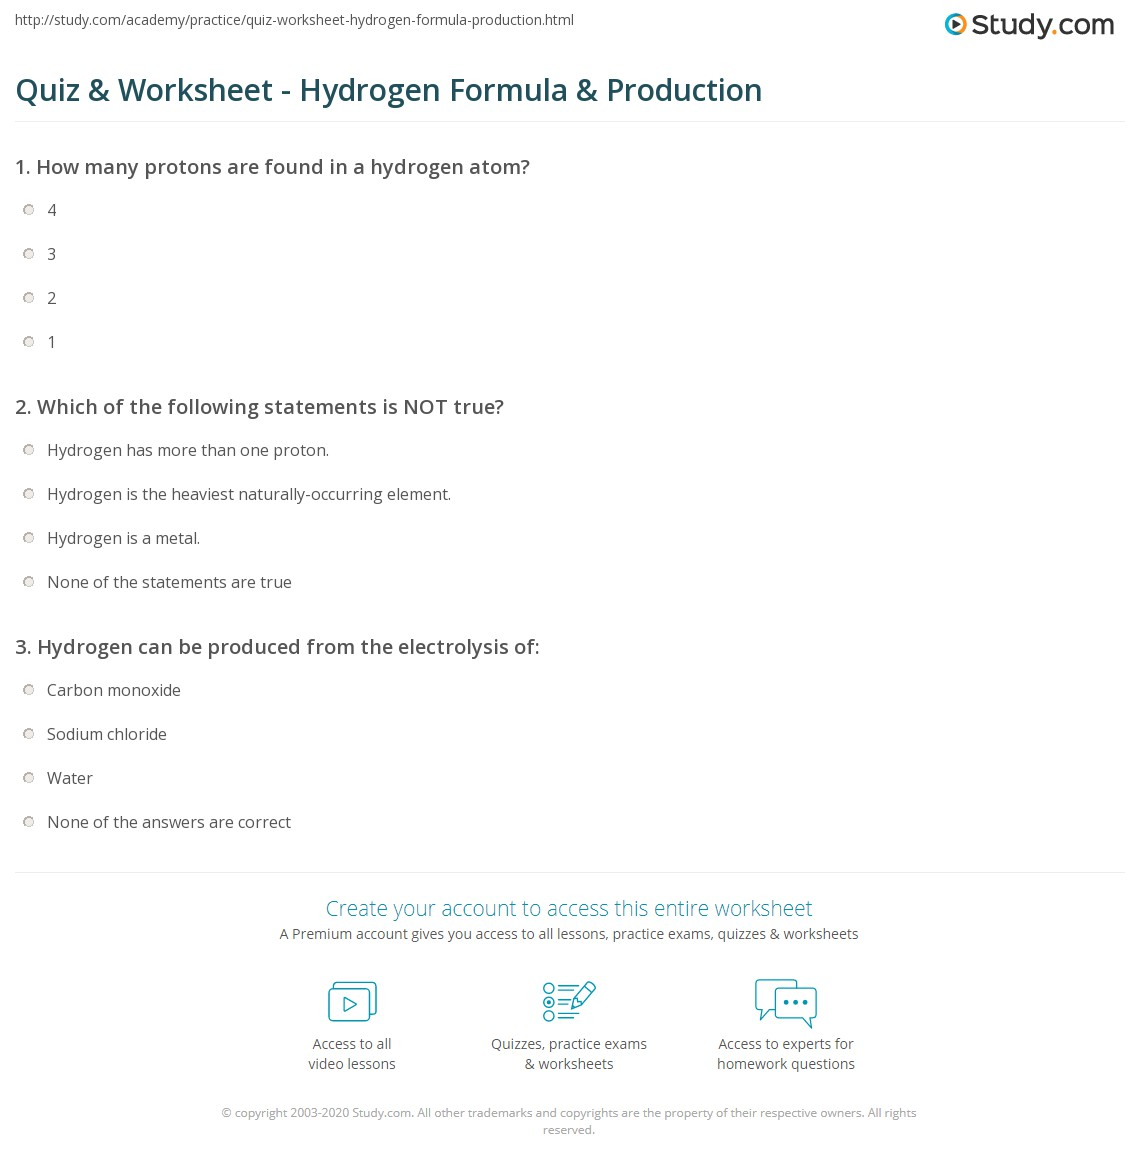 Heaviest metal periodic table gallery periodic table images quiz worksheet hydrogen formula production study already registered login here for access gamestrikefo gallery gamestrikefo Image collections